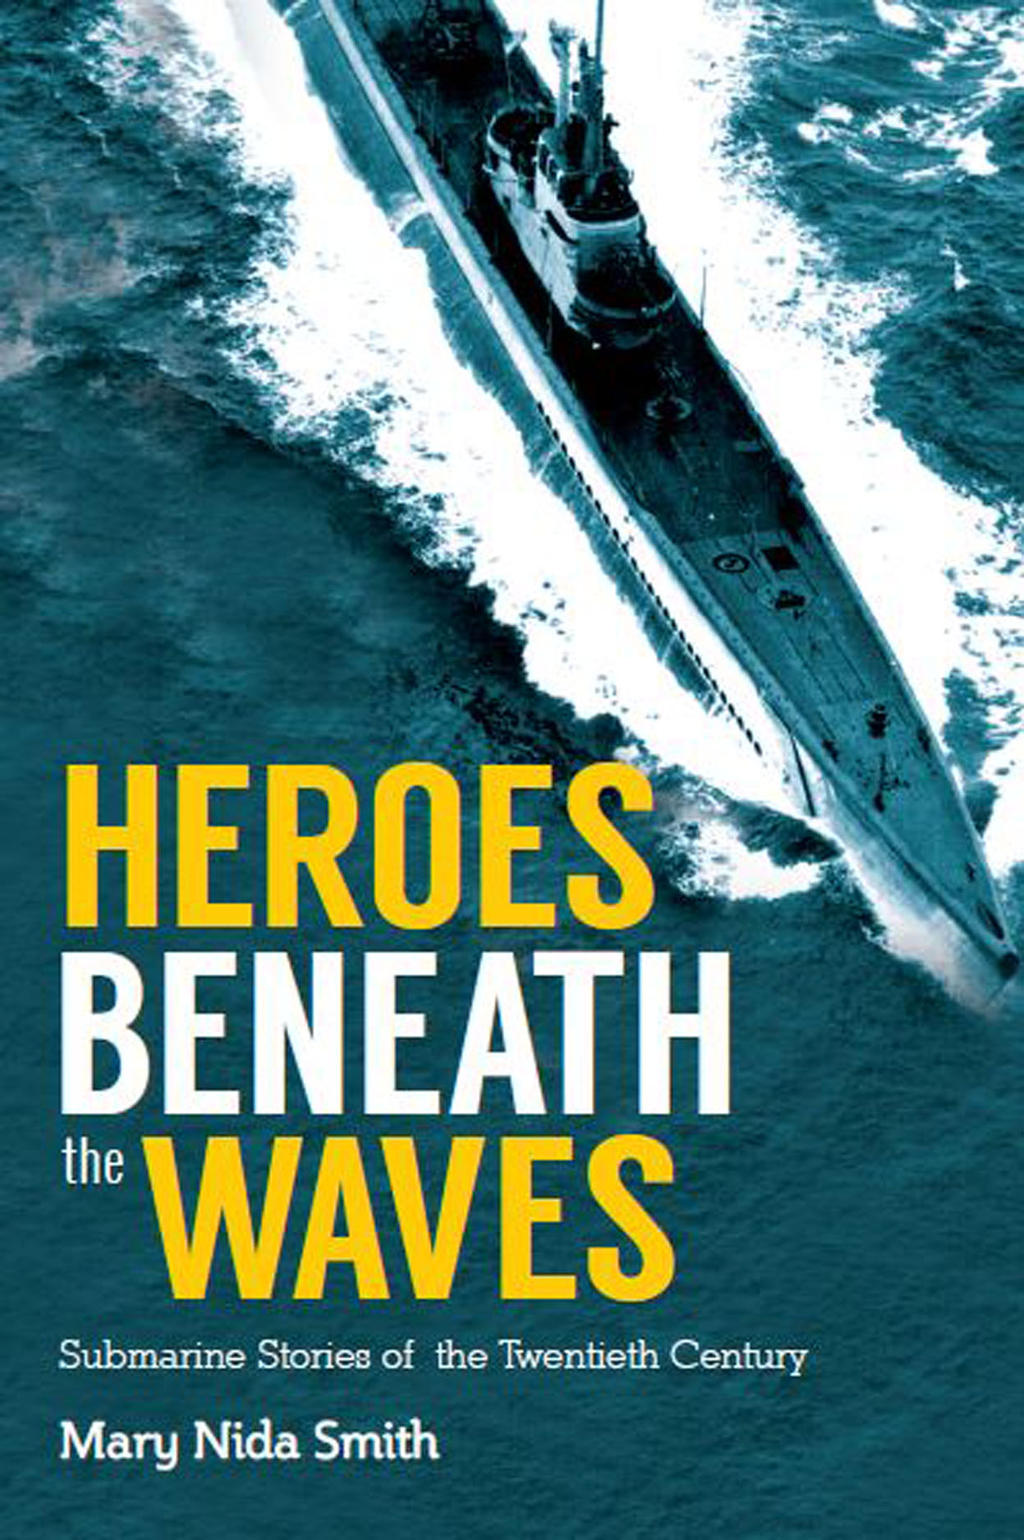 Heroes Beneath the Waves: True Submarine Stories